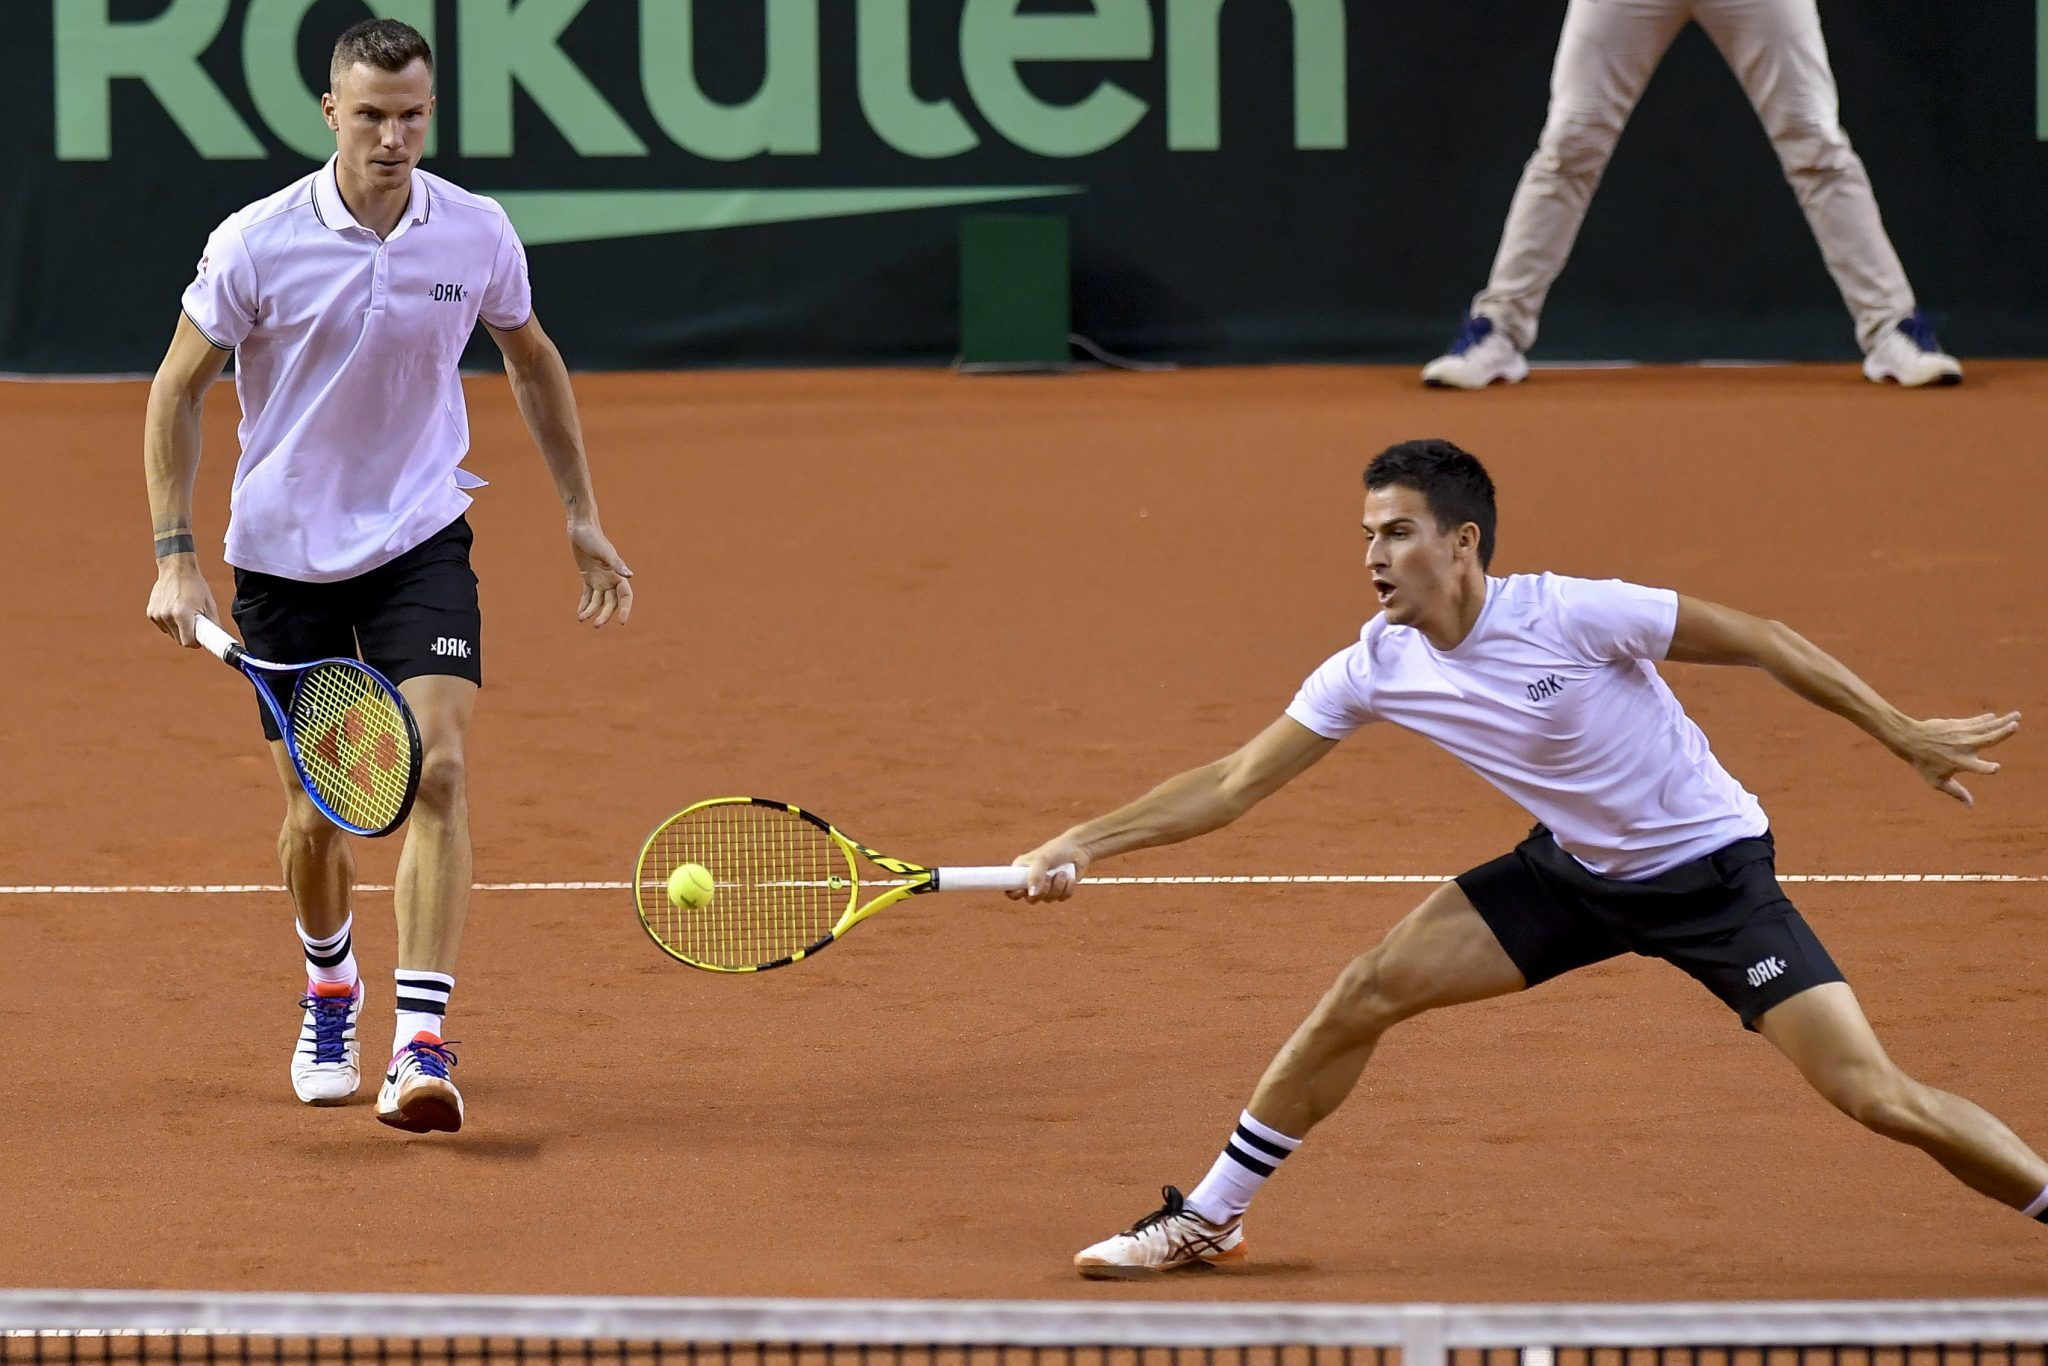 Hungary Beat Belgium and Qualifies for Davis Cup Final post's picture